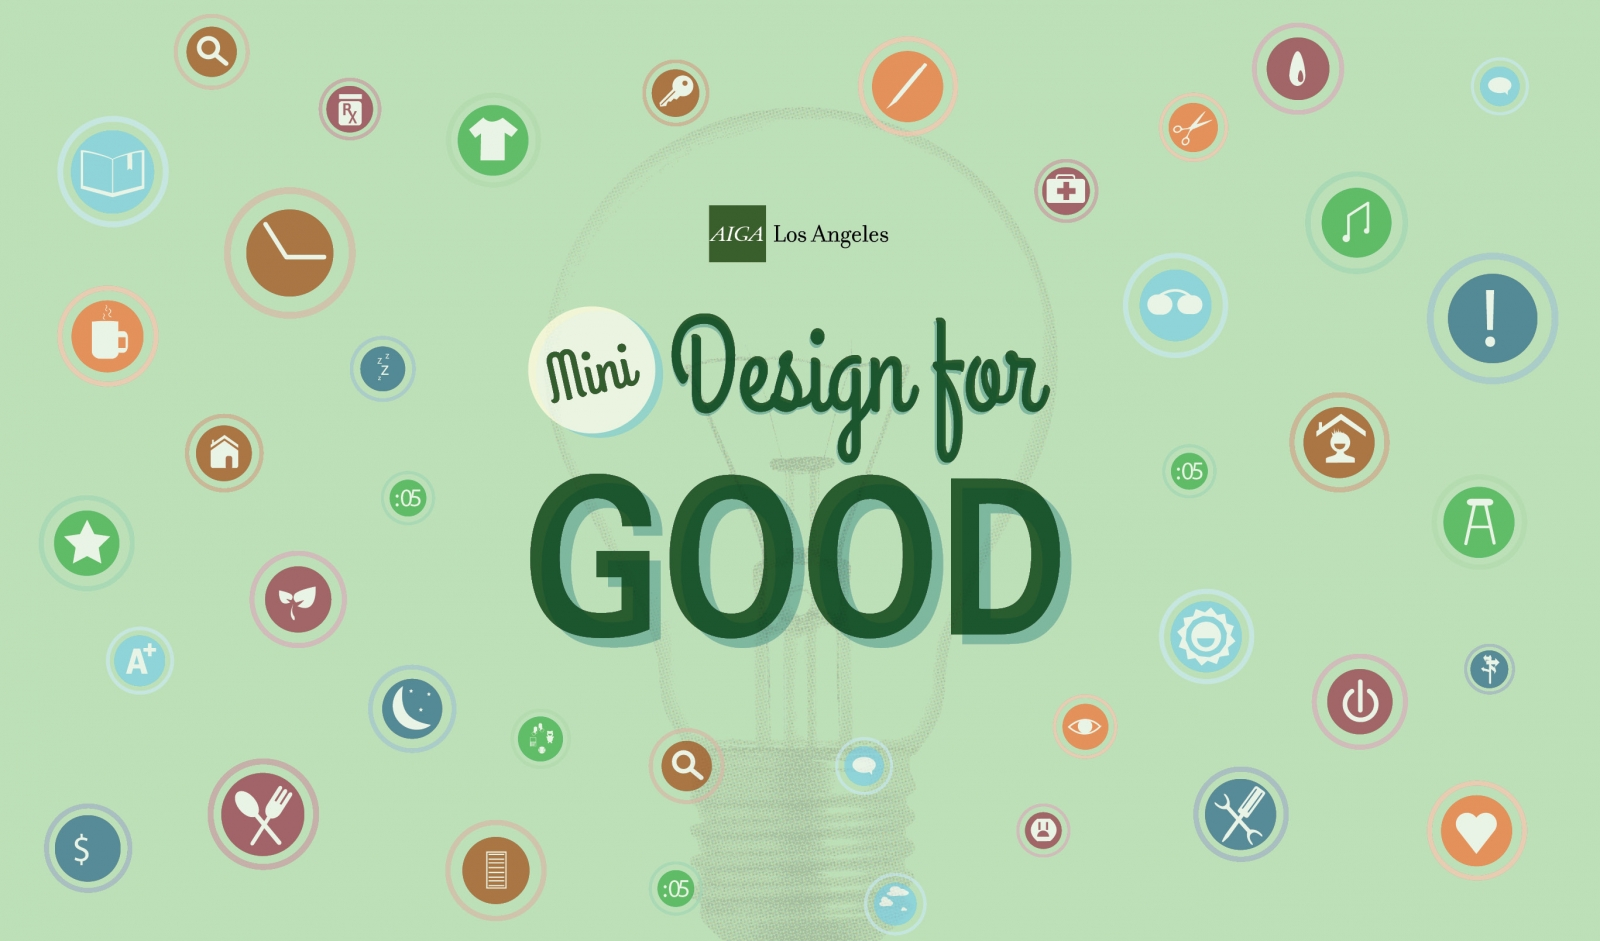 Mini Design For Good Aiga Los Angeles